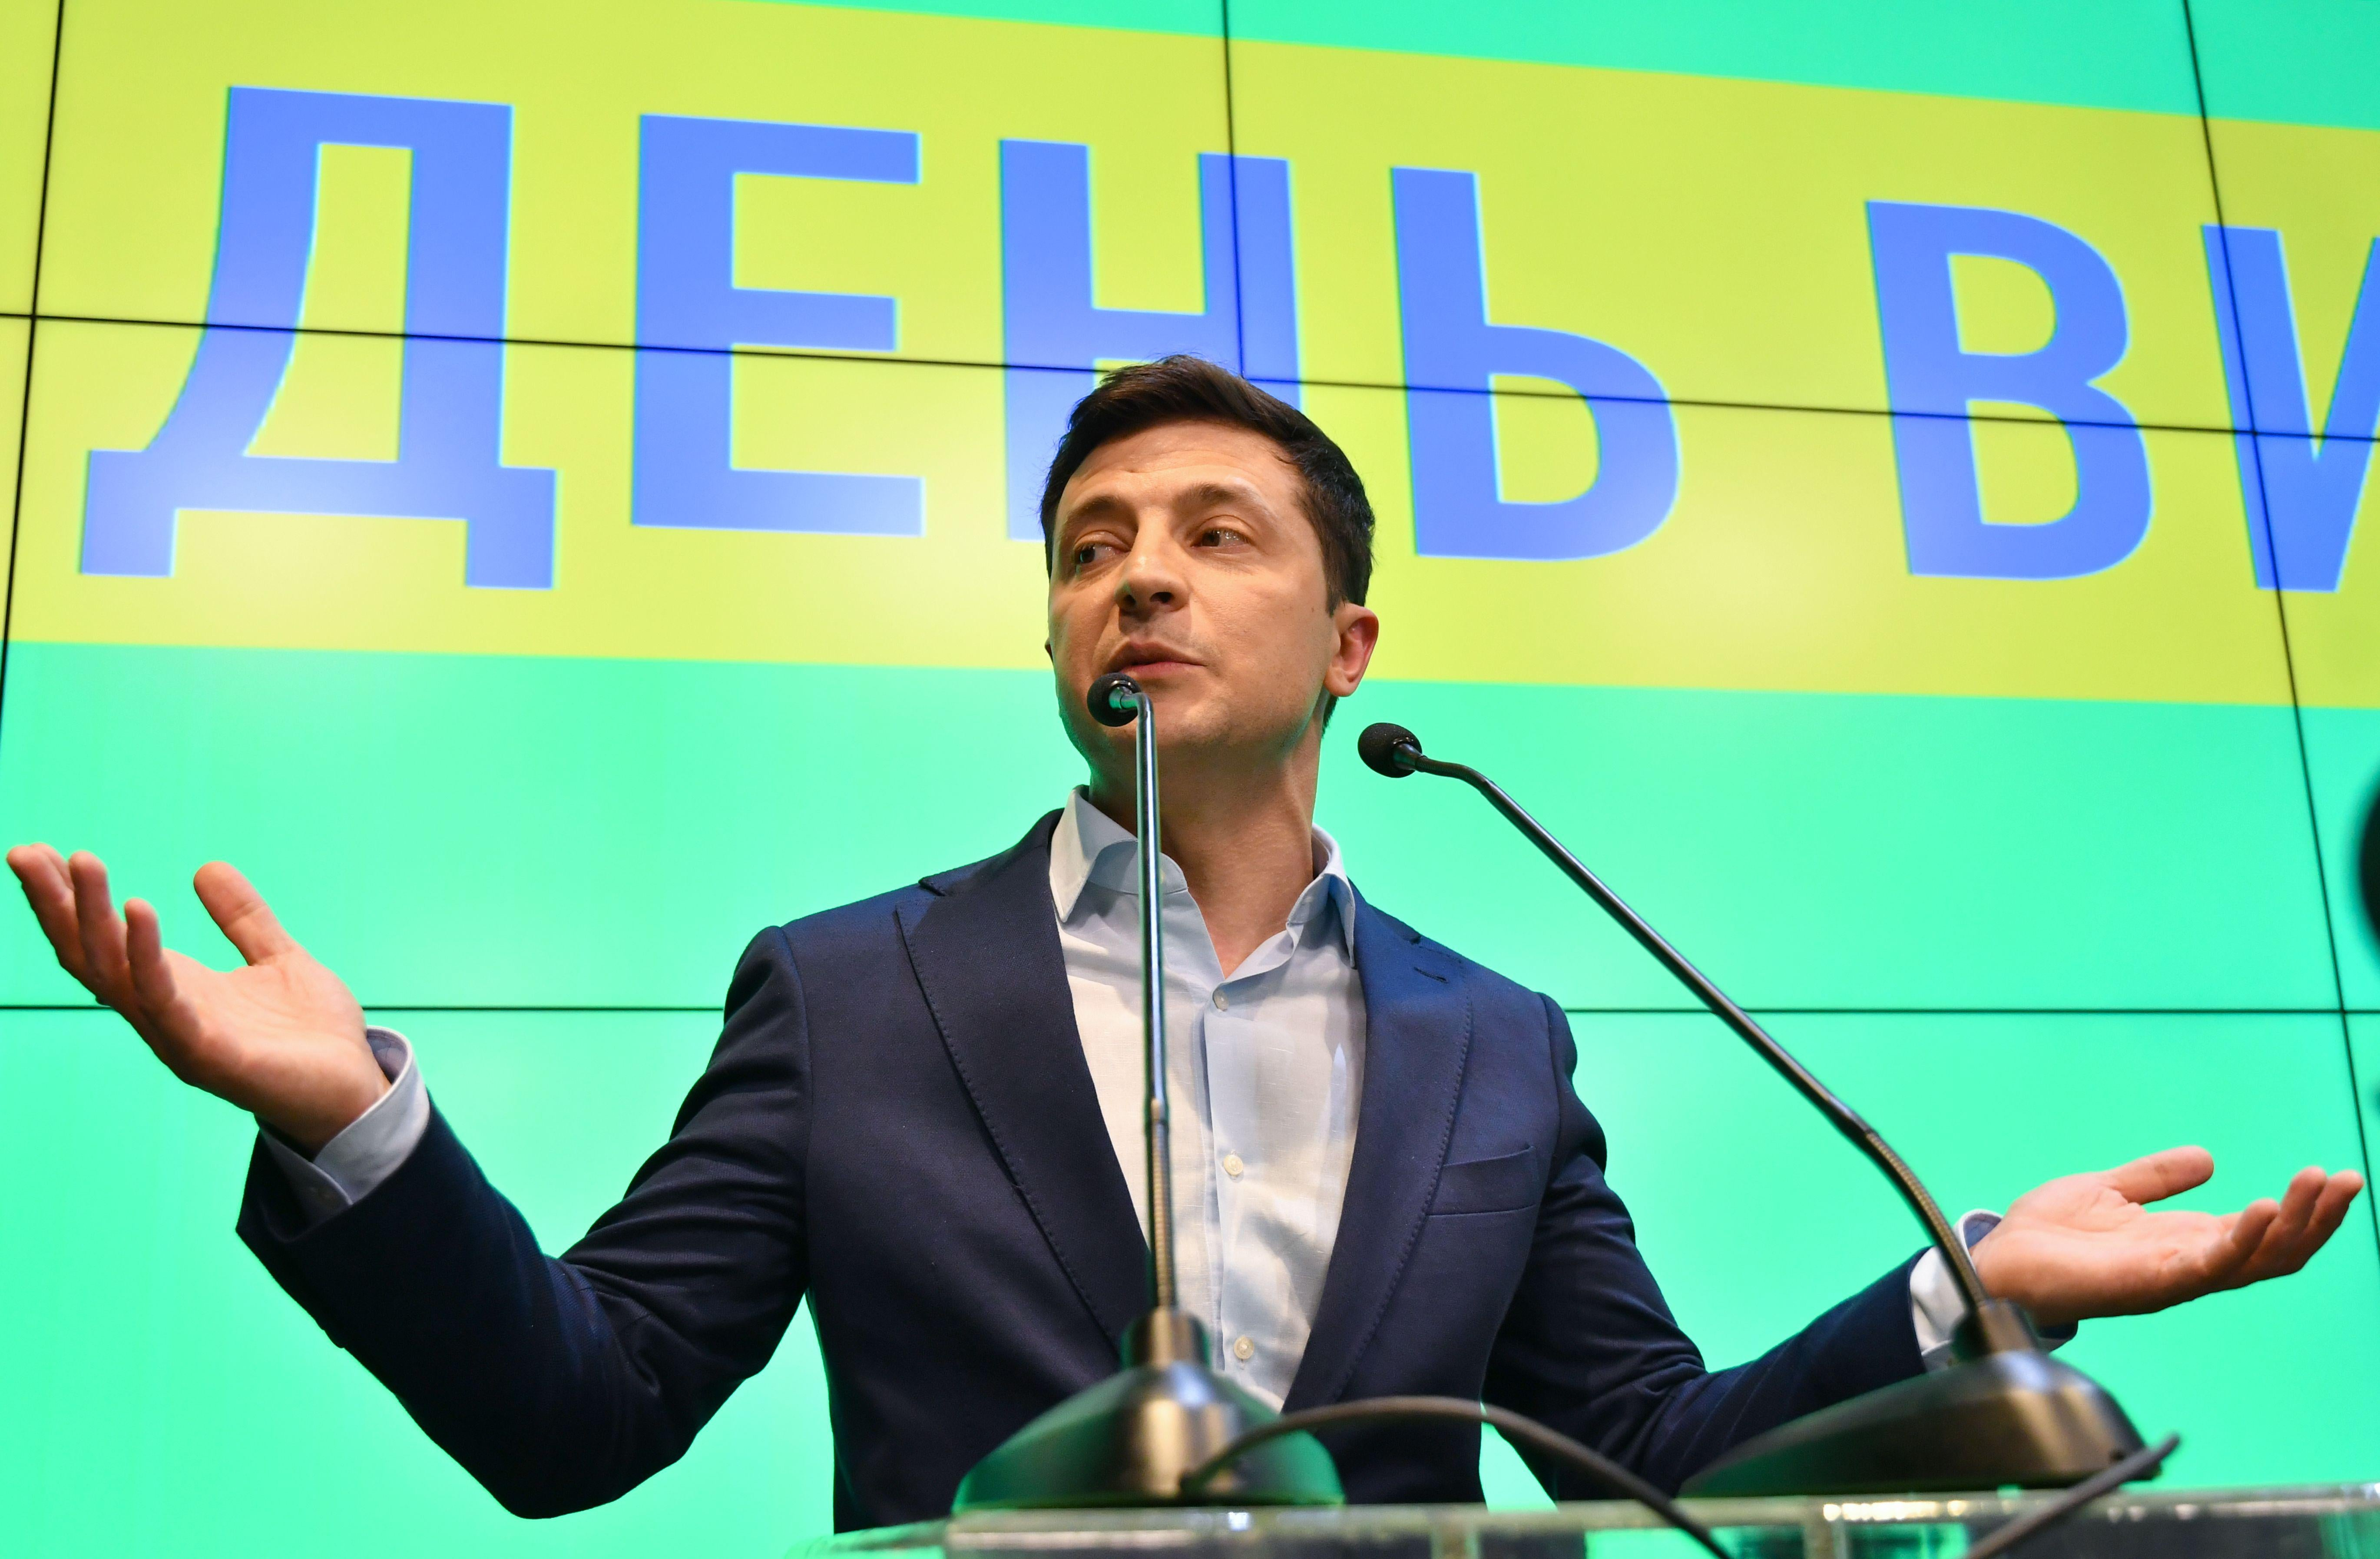 Ukrainian president-elect Volodymyr Zelensky speaks to the media during press conference at his campaign headquarters in Kiev on April 21, 2019.